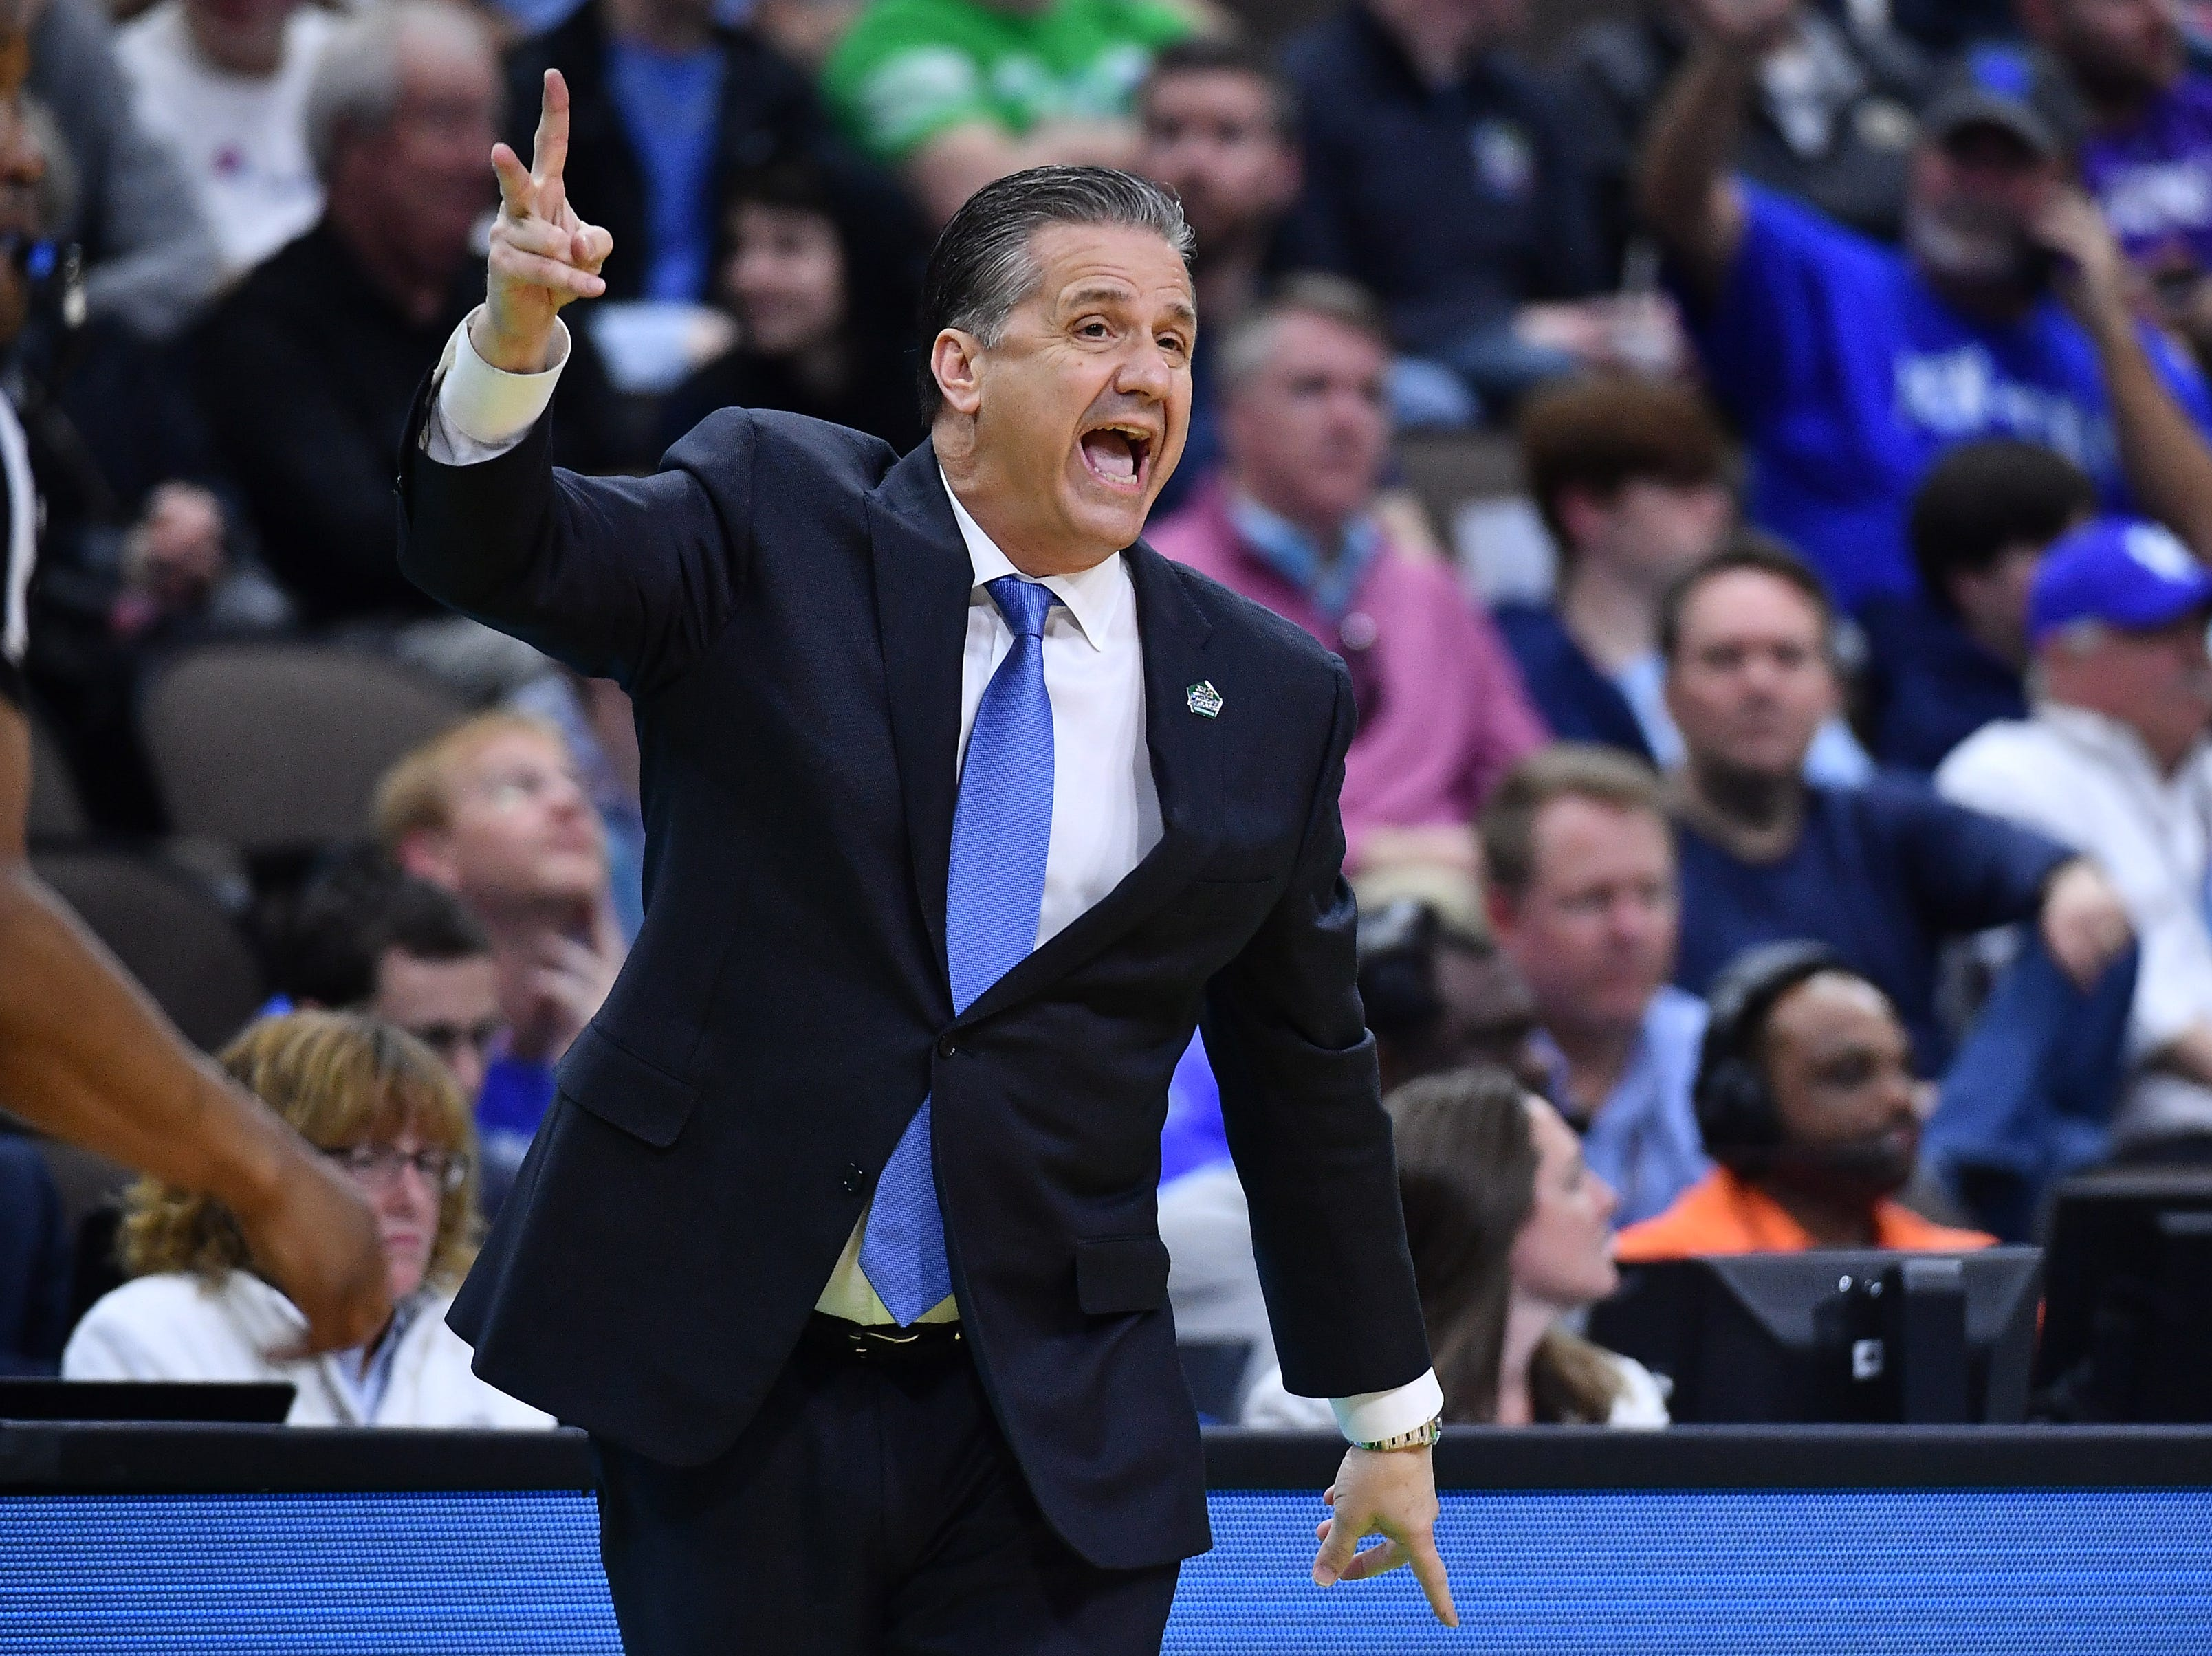 Mar 21, 2019; Jacksonville, FL, USA; Kentucky Wildcats head coach John Calipari yells from the sidelines against the Abilene Christian Wildcats during the first half in the first round of the 2019 NCAA Tournament at Jacksonville Veterans Memorial Arena. Mandatory Credit: John David Mercer-USA TODAY Sports